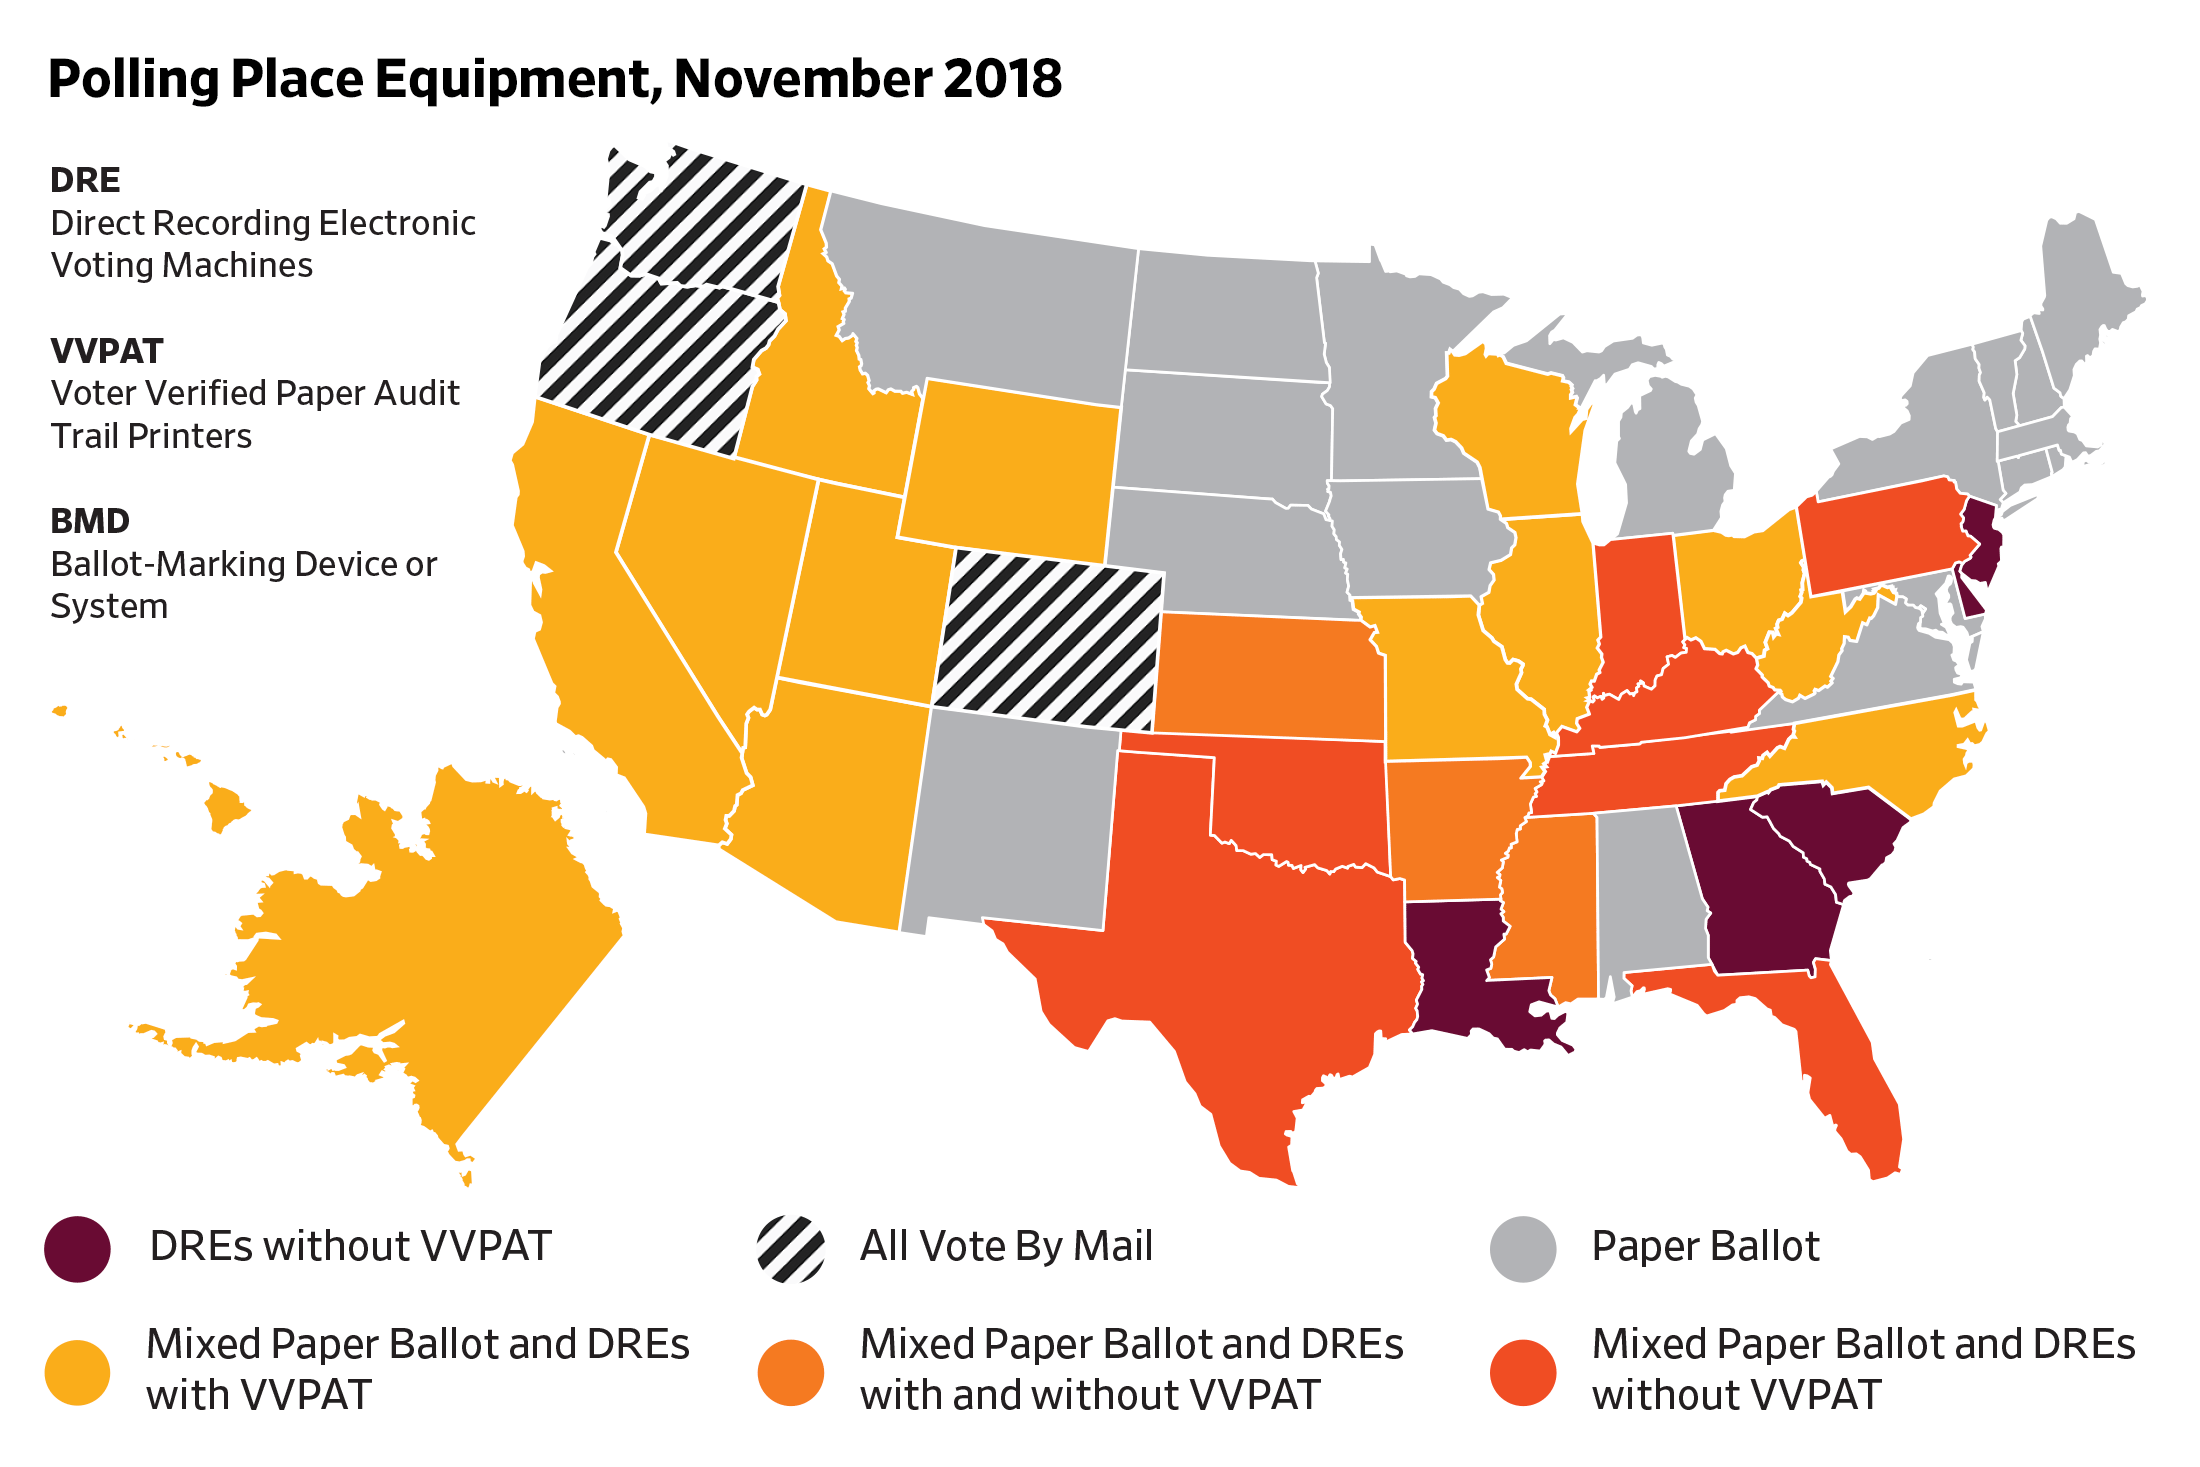 Map of polling place equipment, 2018